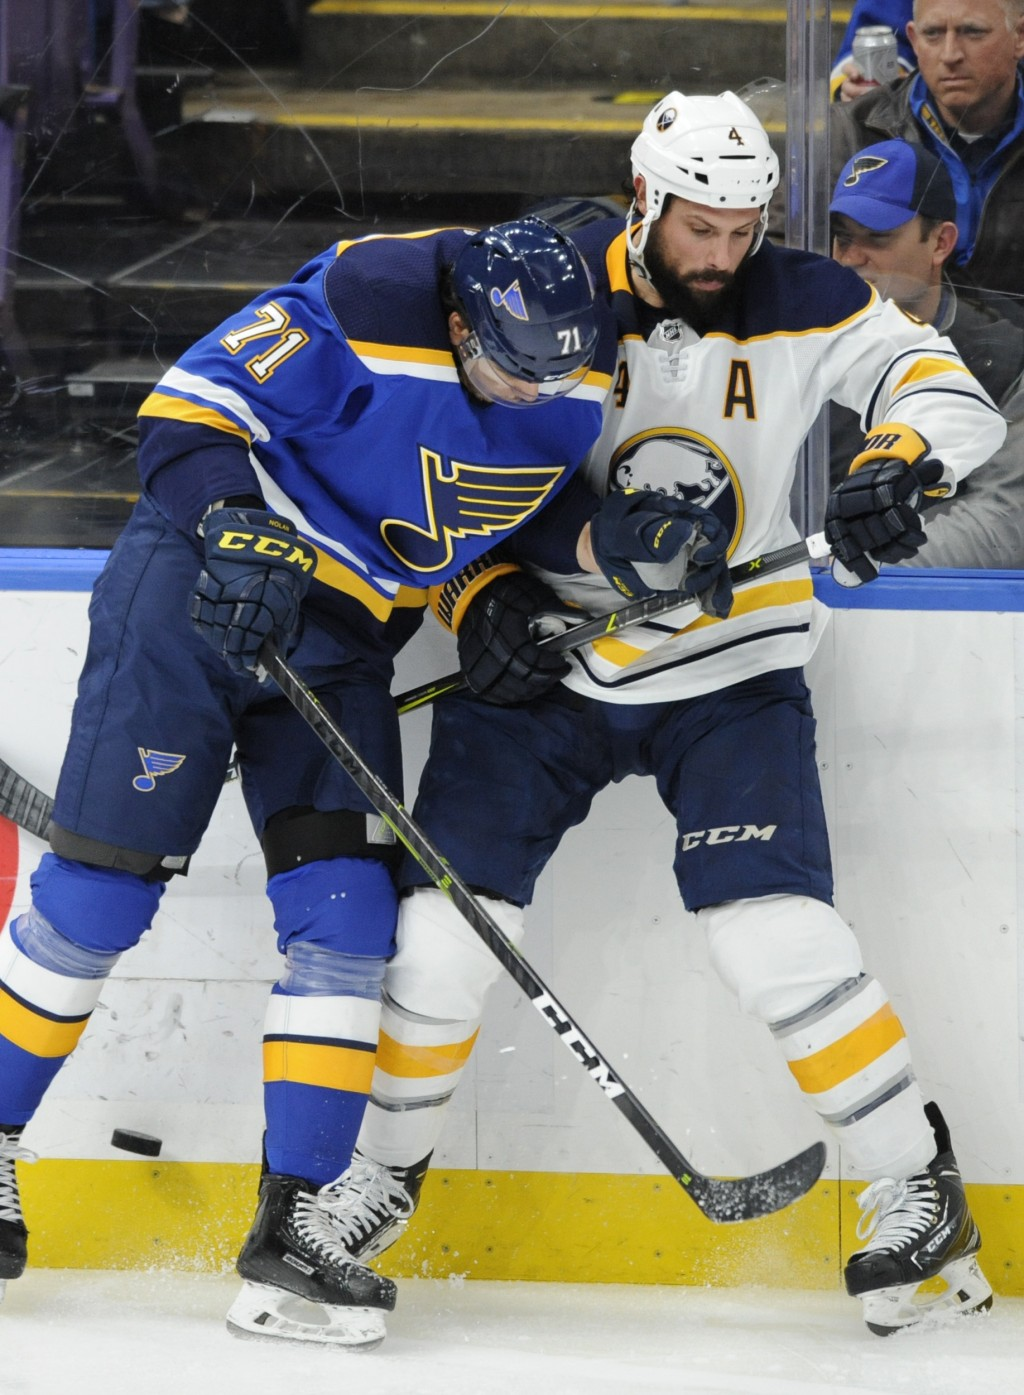 St. Louis Blues' Jordan Nolan (71) looks for the puck with Buffalo Sabres' Zach Bogosian (4) during the second period of an NHL hockey game, Thursday,